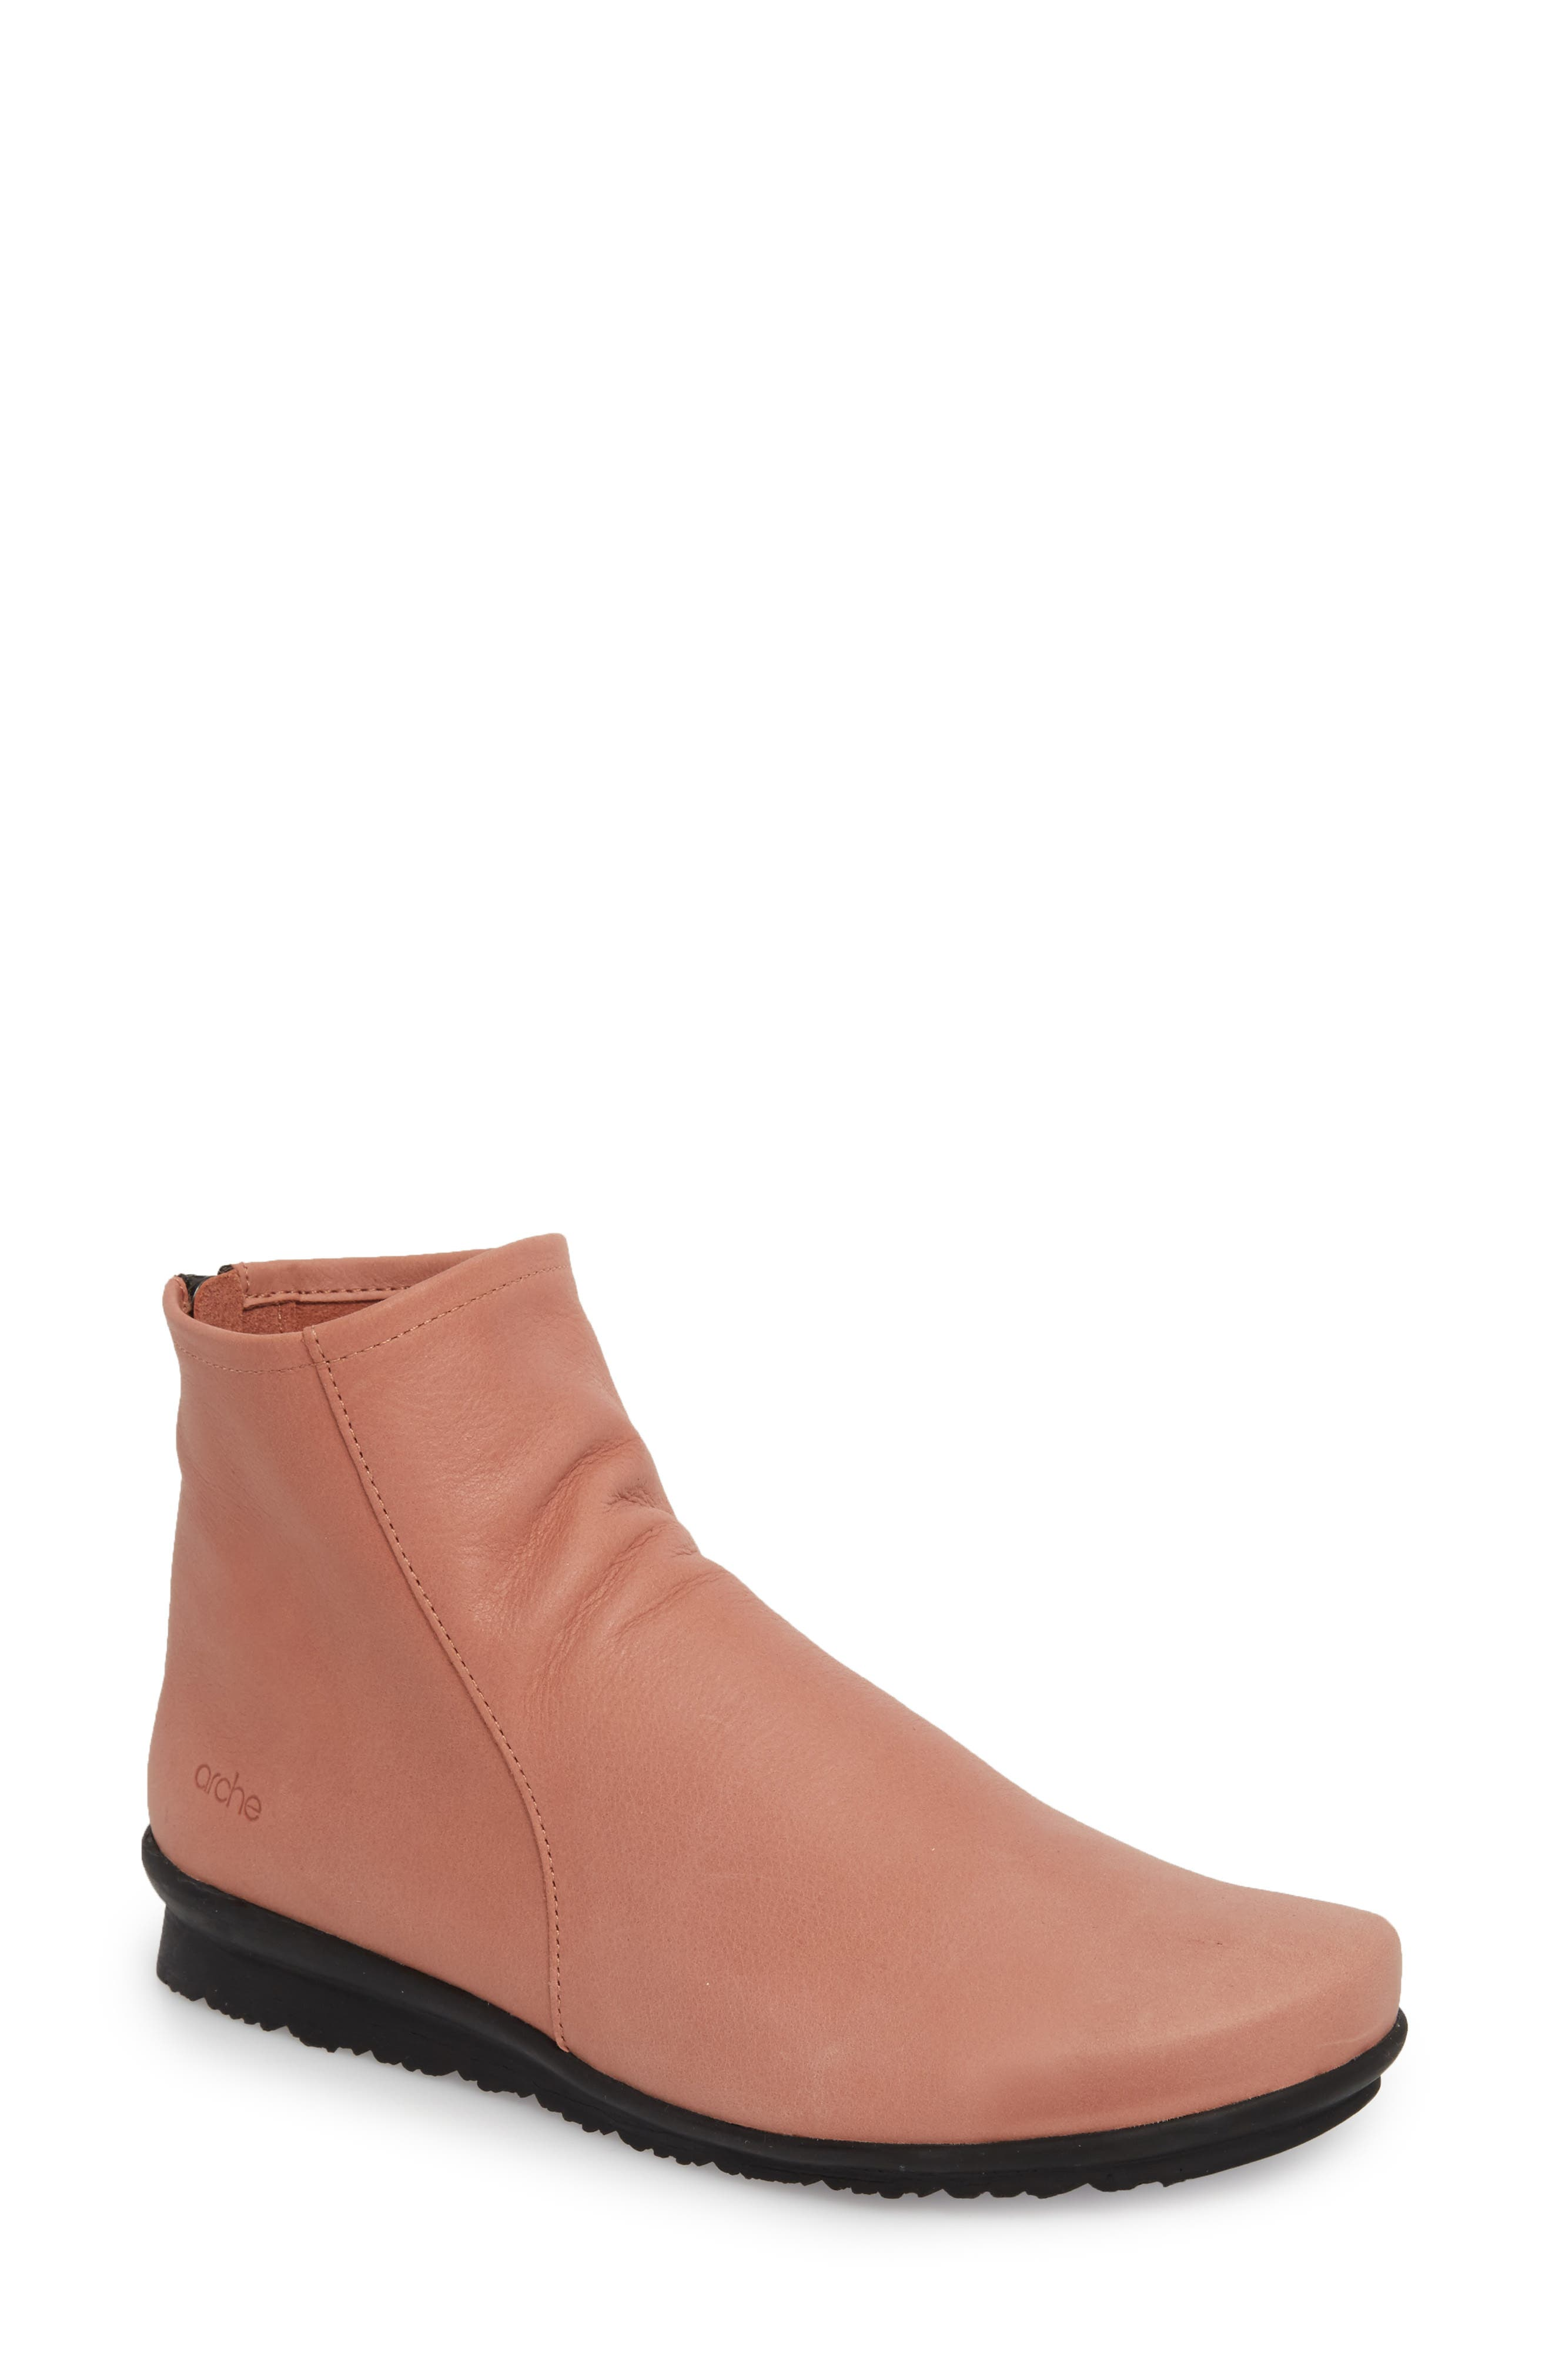 ARCHE 'Baryky' Boot in Blush Leather